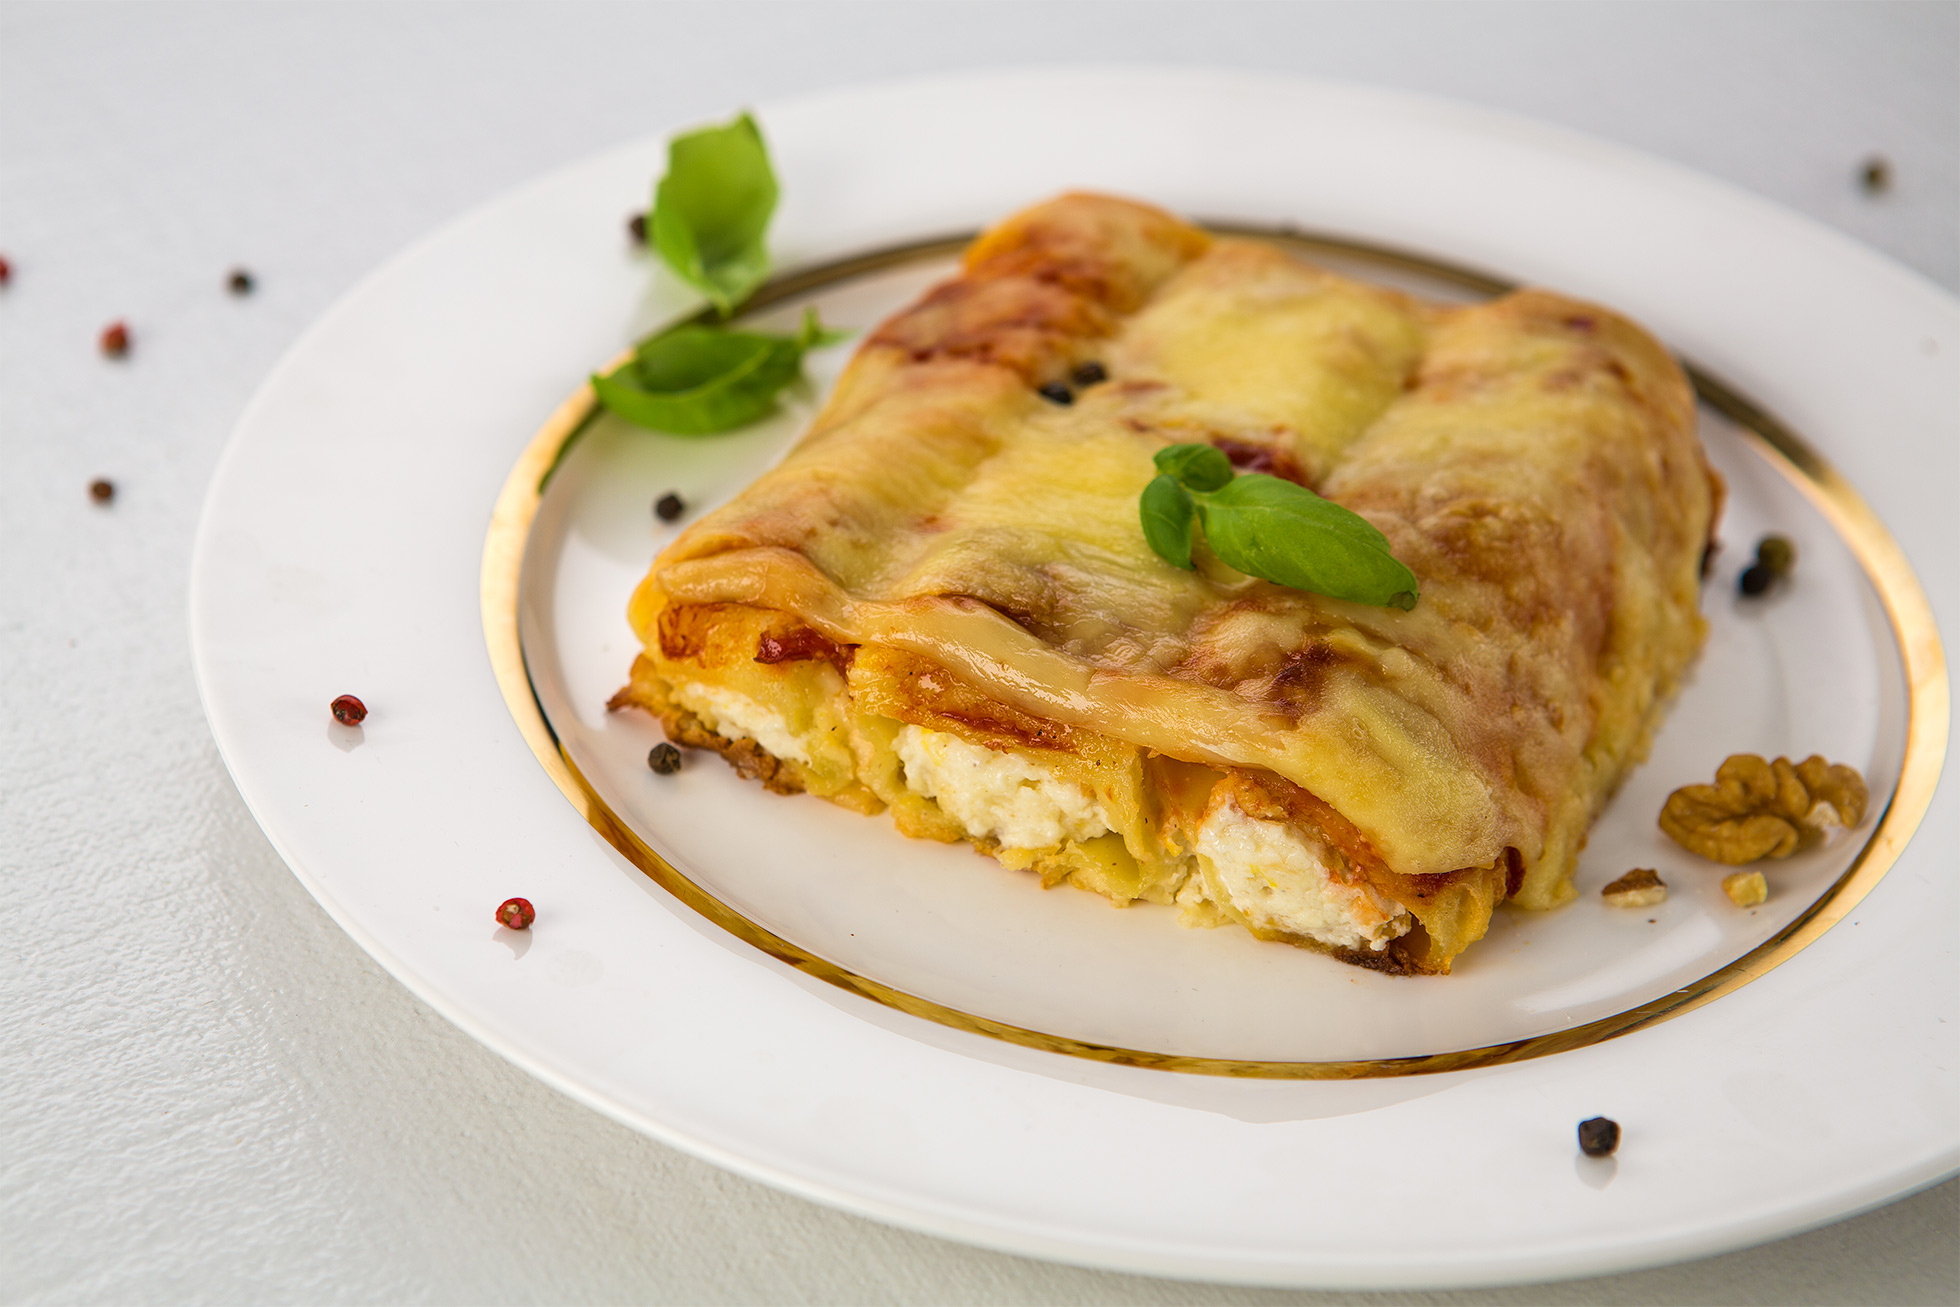 Cannelloni a la française with Chèvre and walnuts